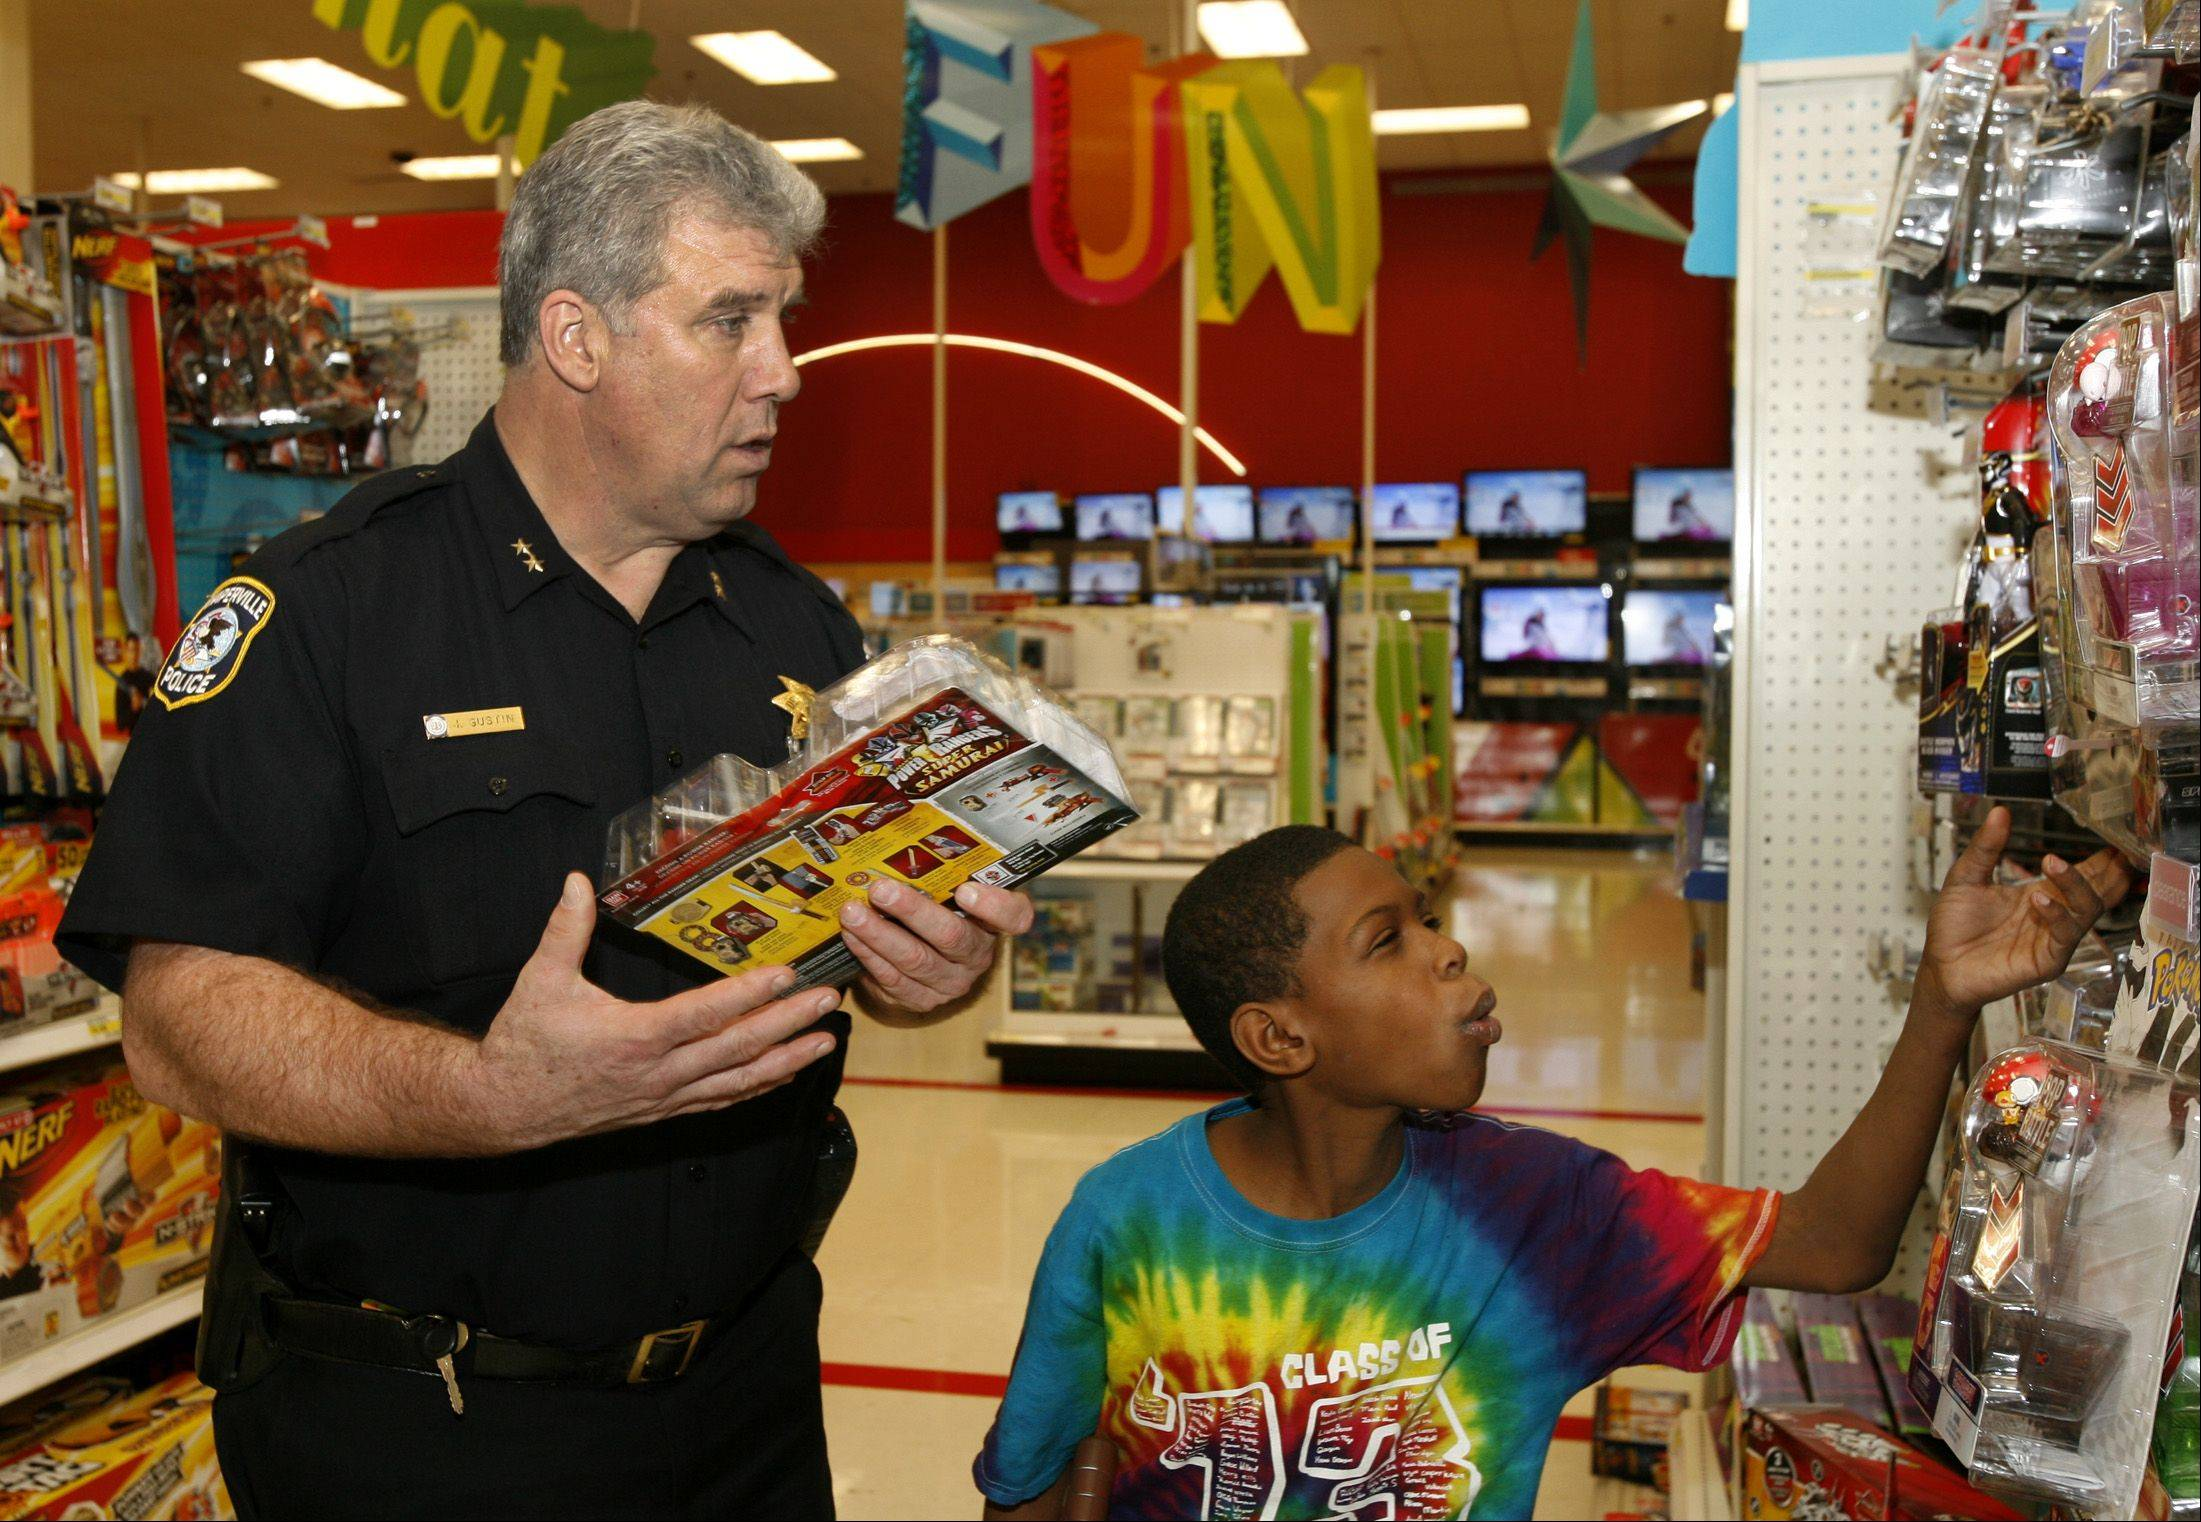 The NFOP in conjunction with the City of Naperville's youth services unit, select several disadvantaged children to participate in a $150.00 shopping spree. Darrell Ware, 10, of Naperville is teamed up with Naperville Deputy Chief John Gustin, who guides a shopping at a Naperville Target Store.